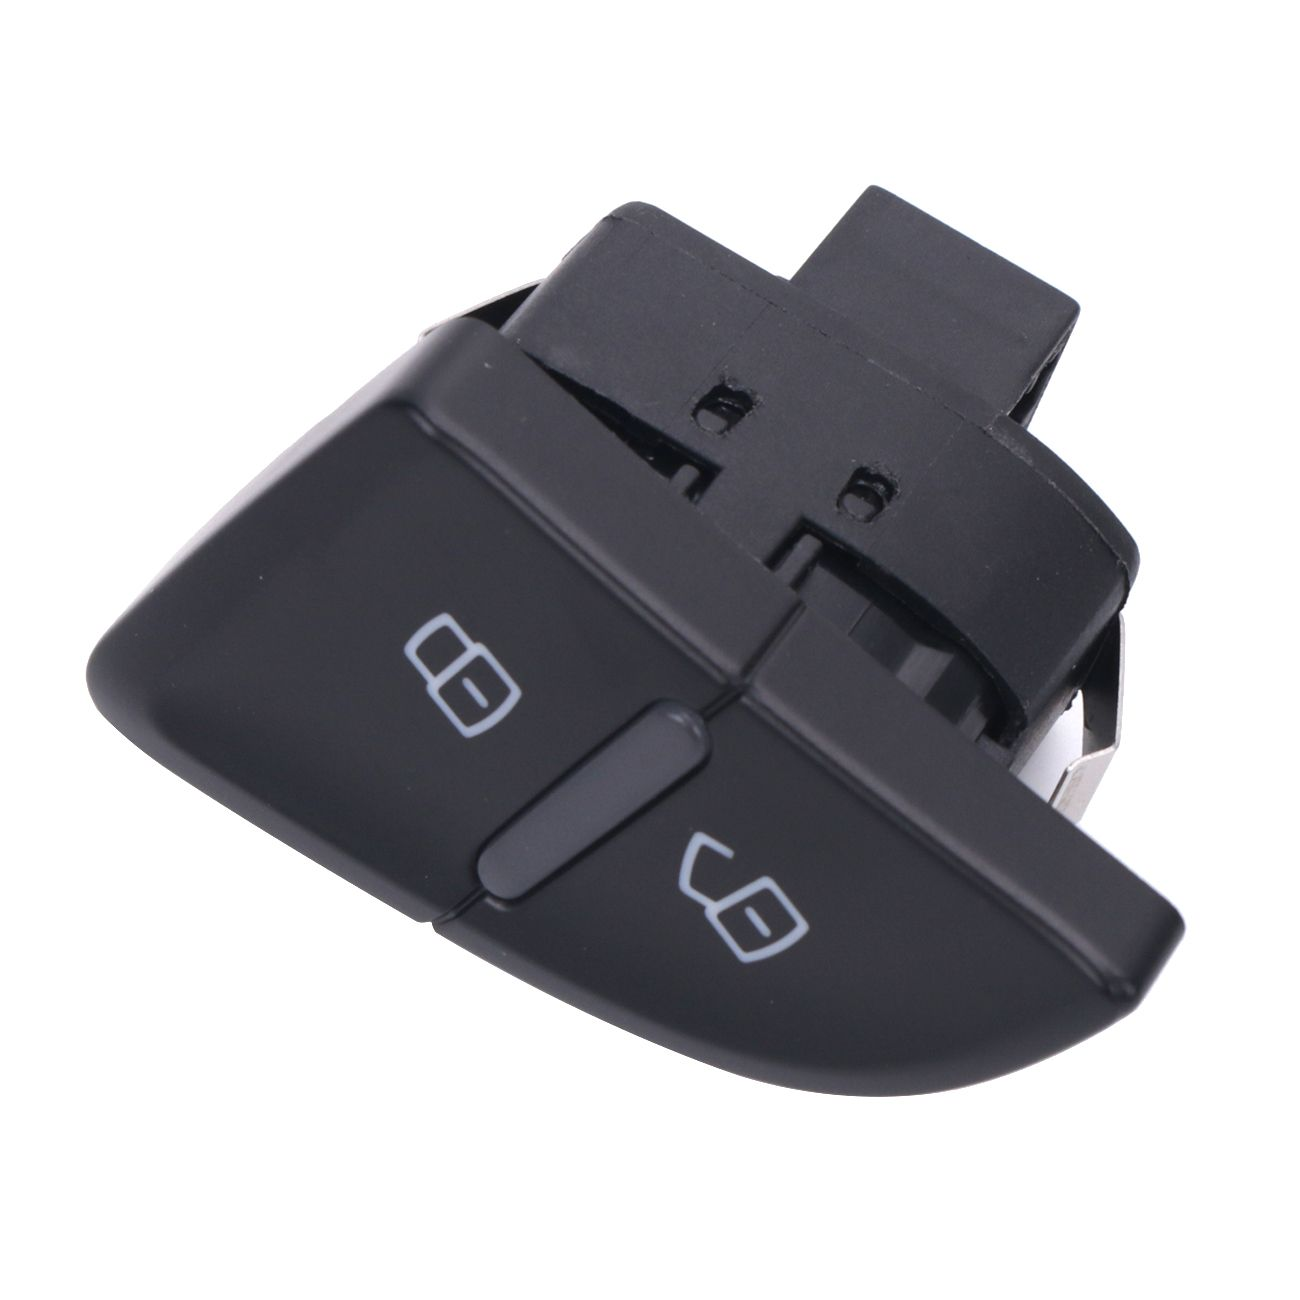 For Audi A4 S4 B8 A5 S5 Front Right Door Lock Unlock Switch Button Rhd Replacement 8k2962108a Car Accessory P400 Car Accessories Audi A4 Accessories